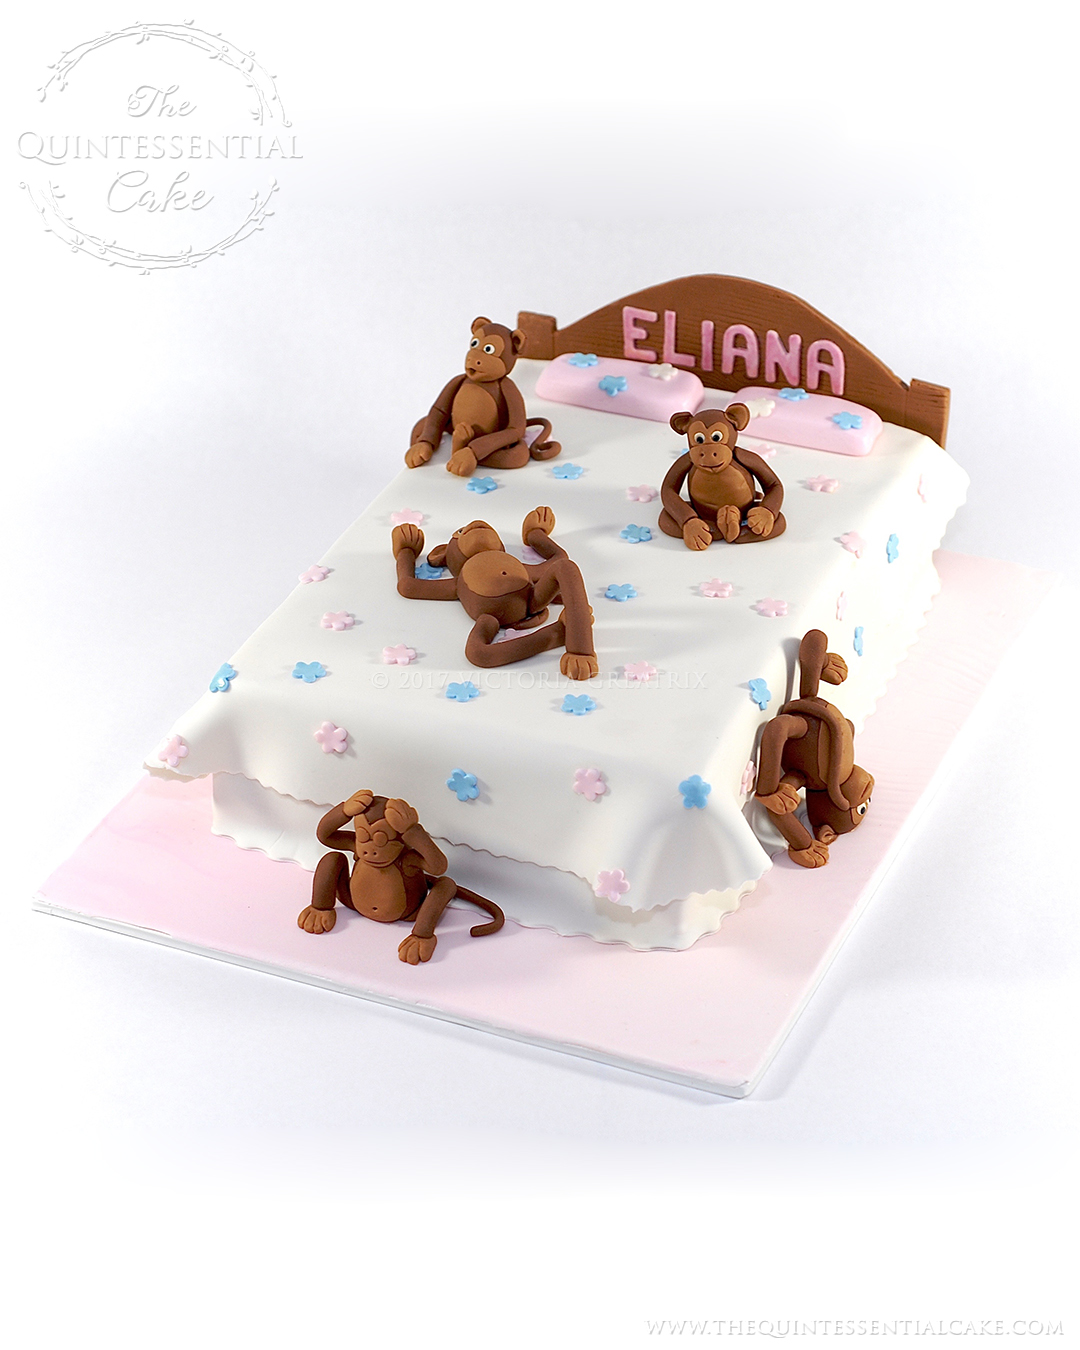 Five Little Monkeys Cake